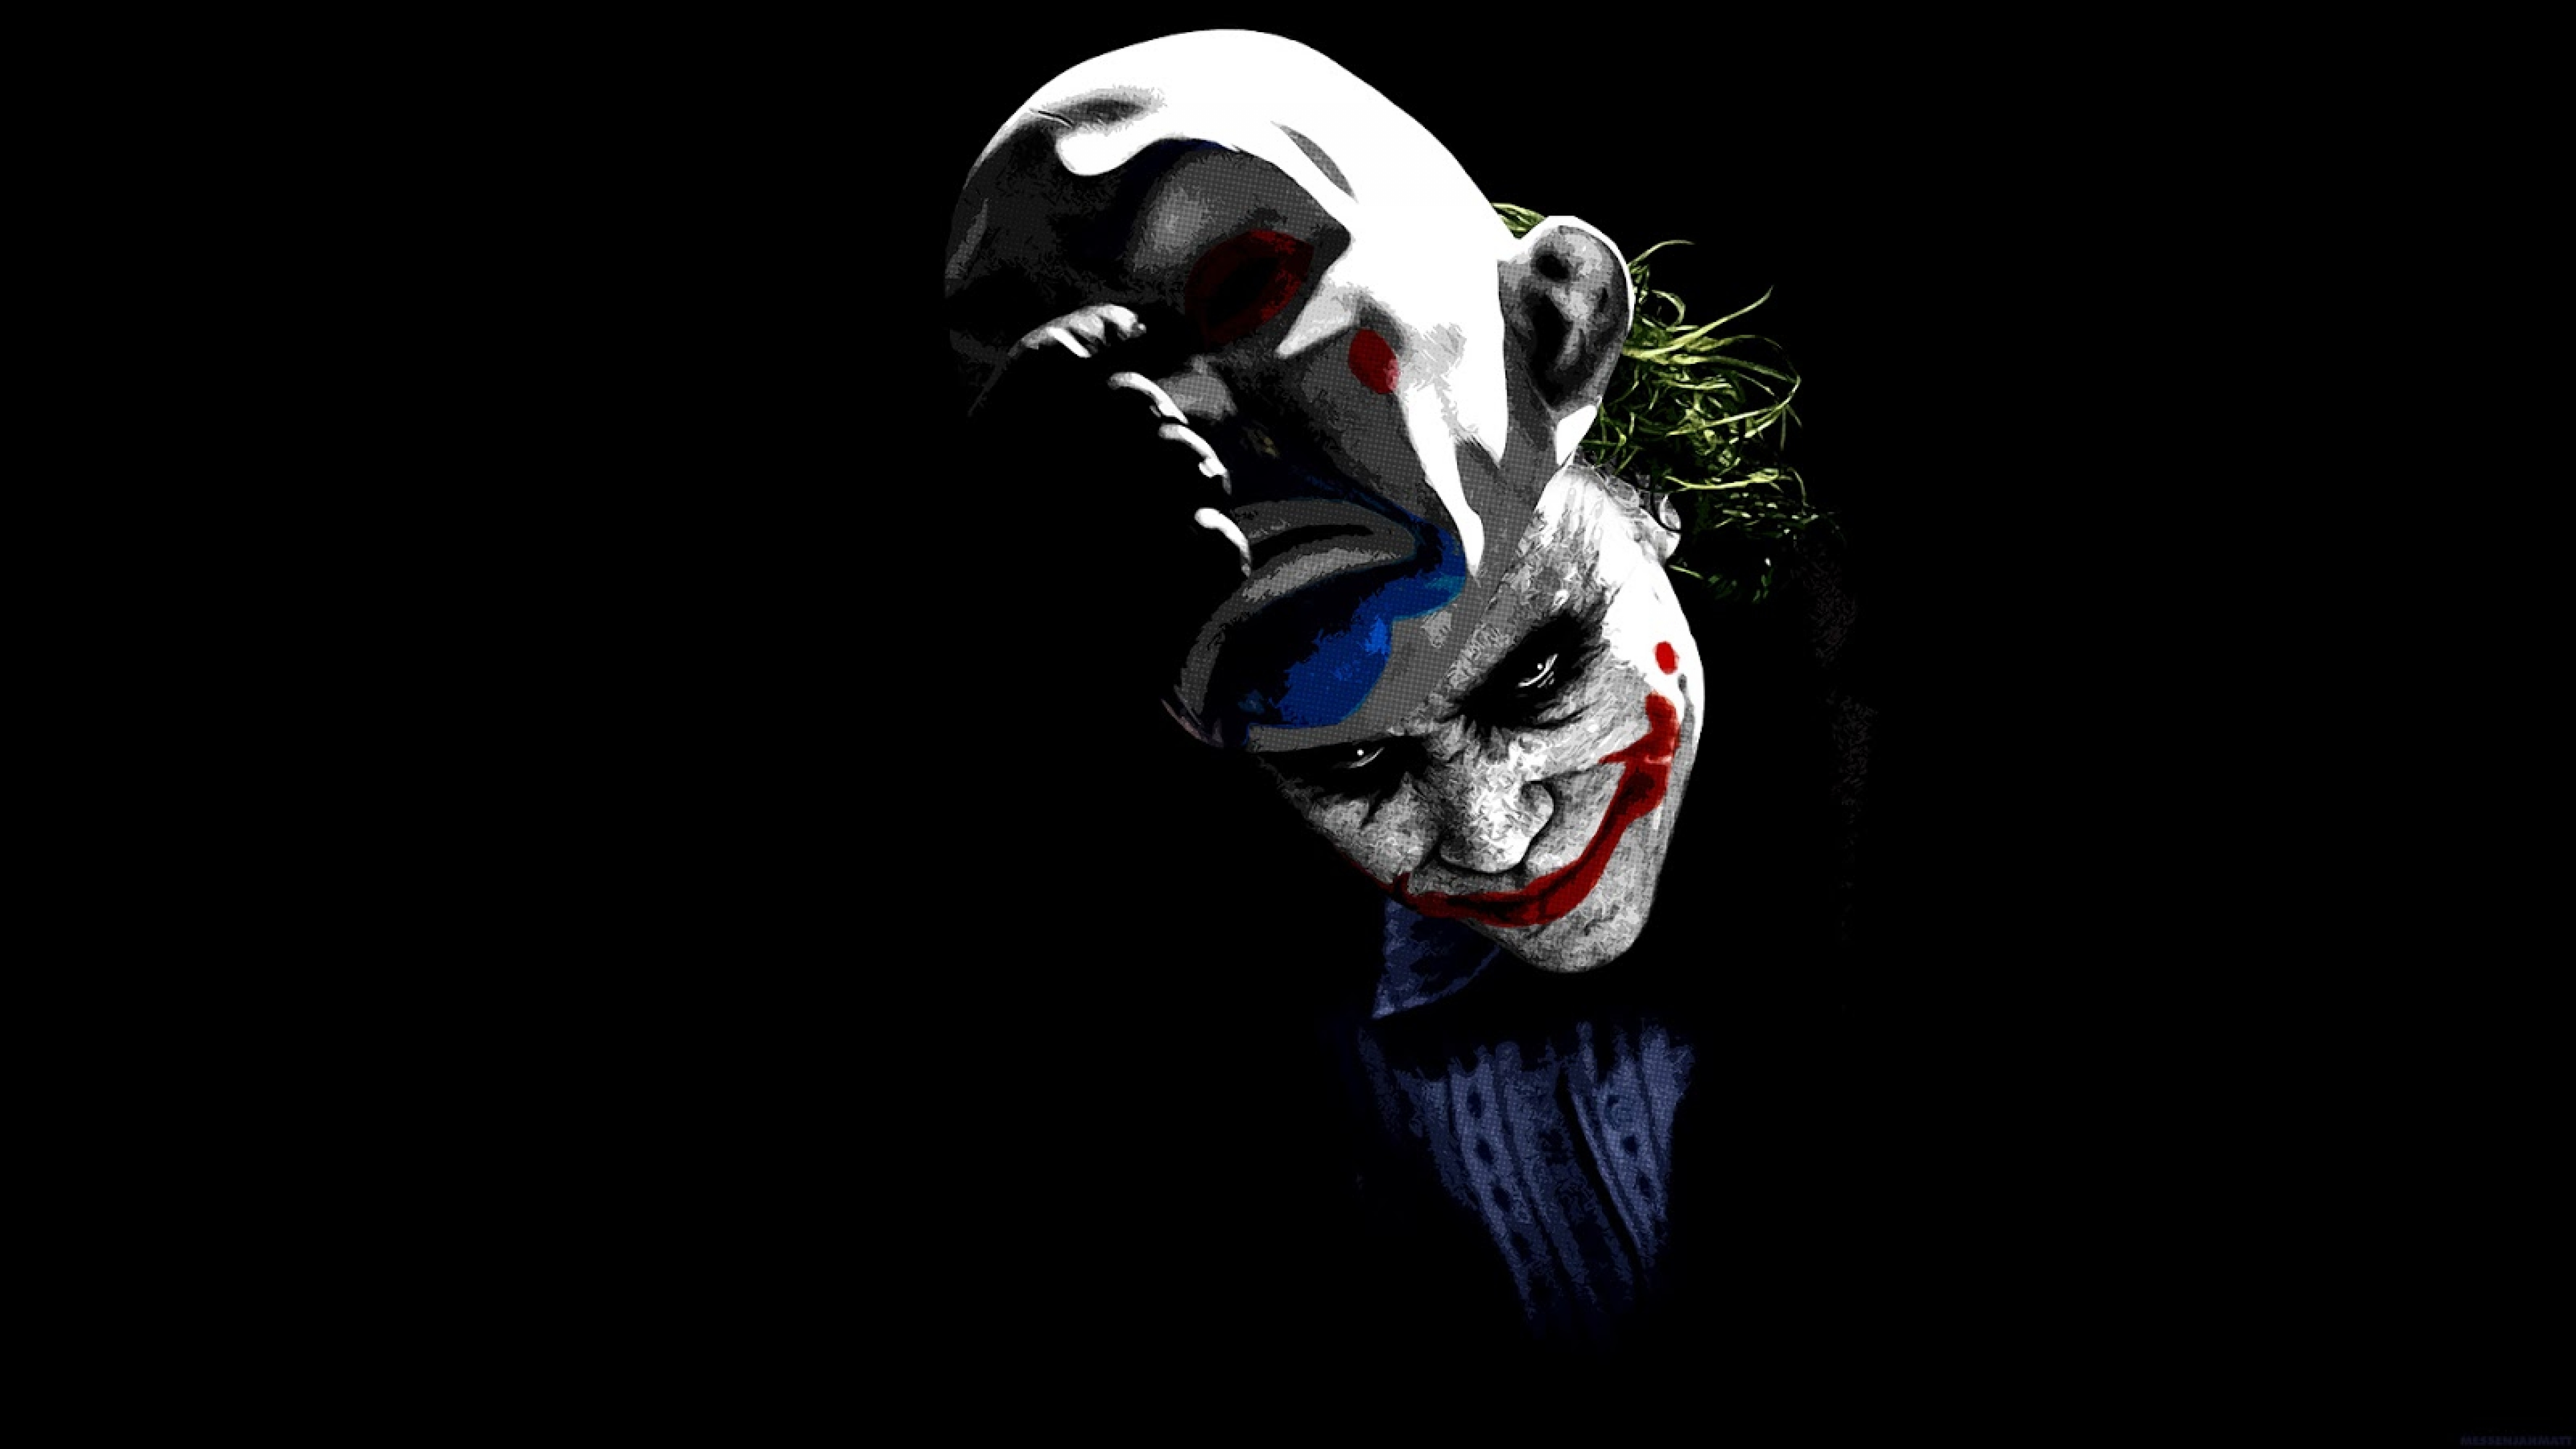 7680x4320 Joker 8k 8k Hd 4k Wallpapers Images Backgrounds Photos And Pictures